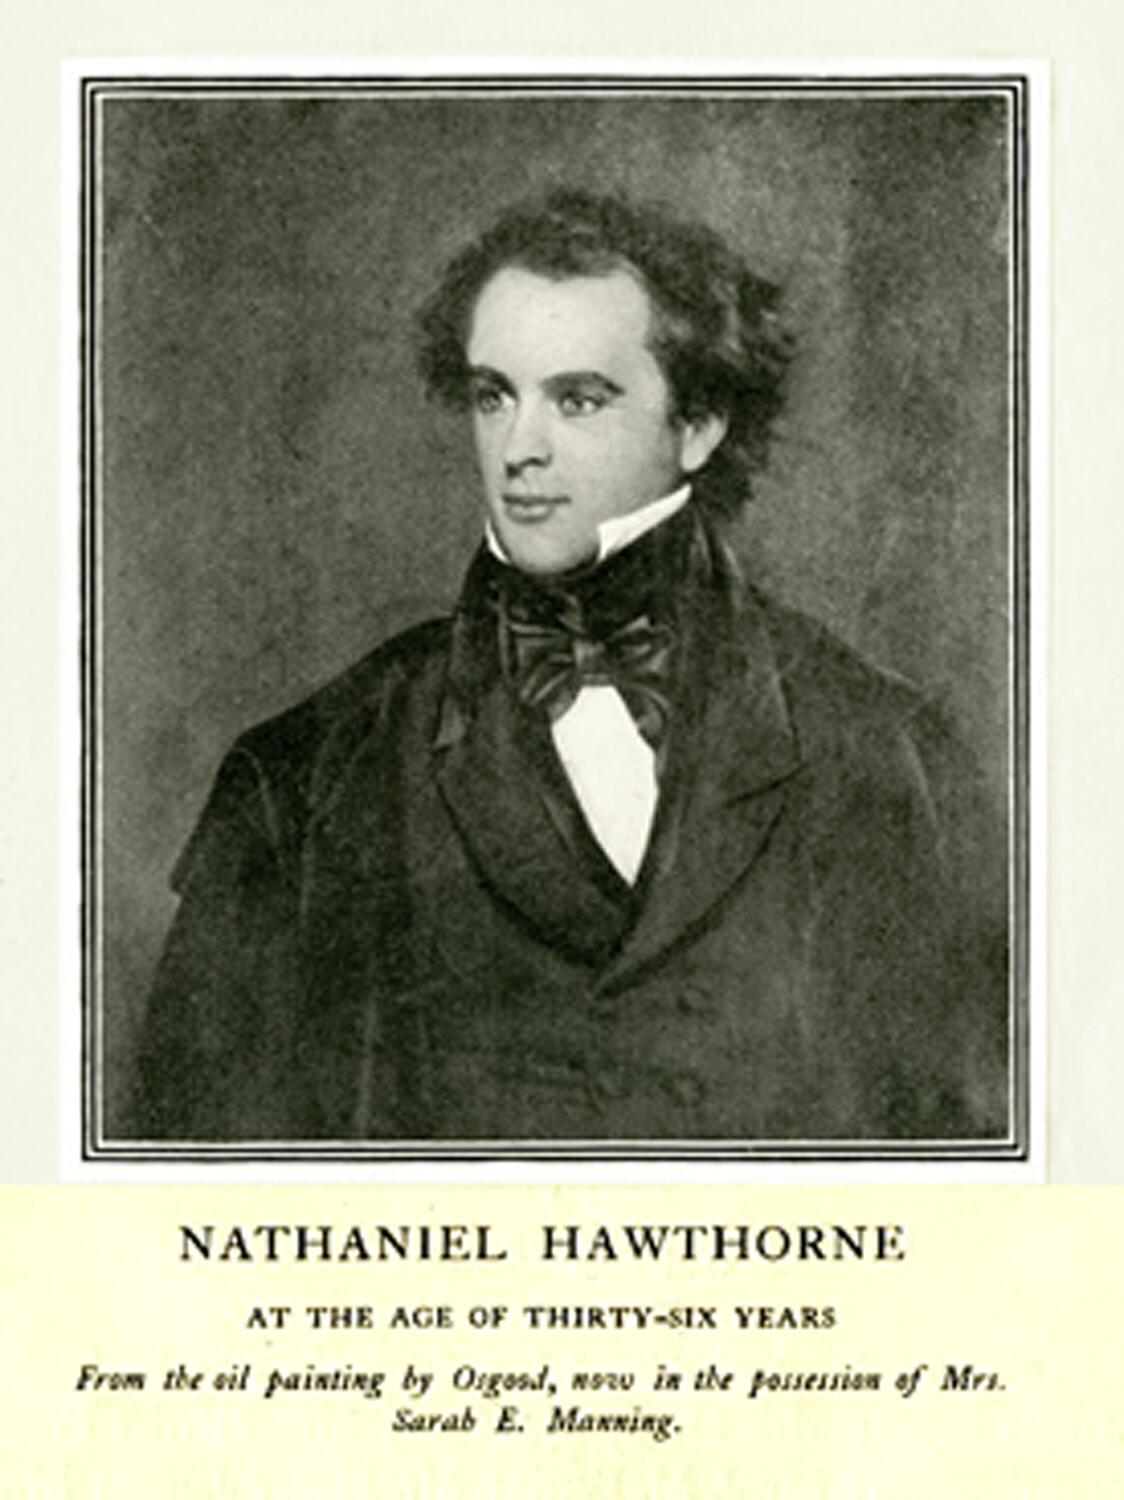 Nathaniel Hawthorne (1804-1864)1904 engraving from an oil portrait by Osgood shows Hawthorne at age 36, during the period he was employed as a customs measurer of coal and salt in the Boston Custom House from 1839 to 1841.